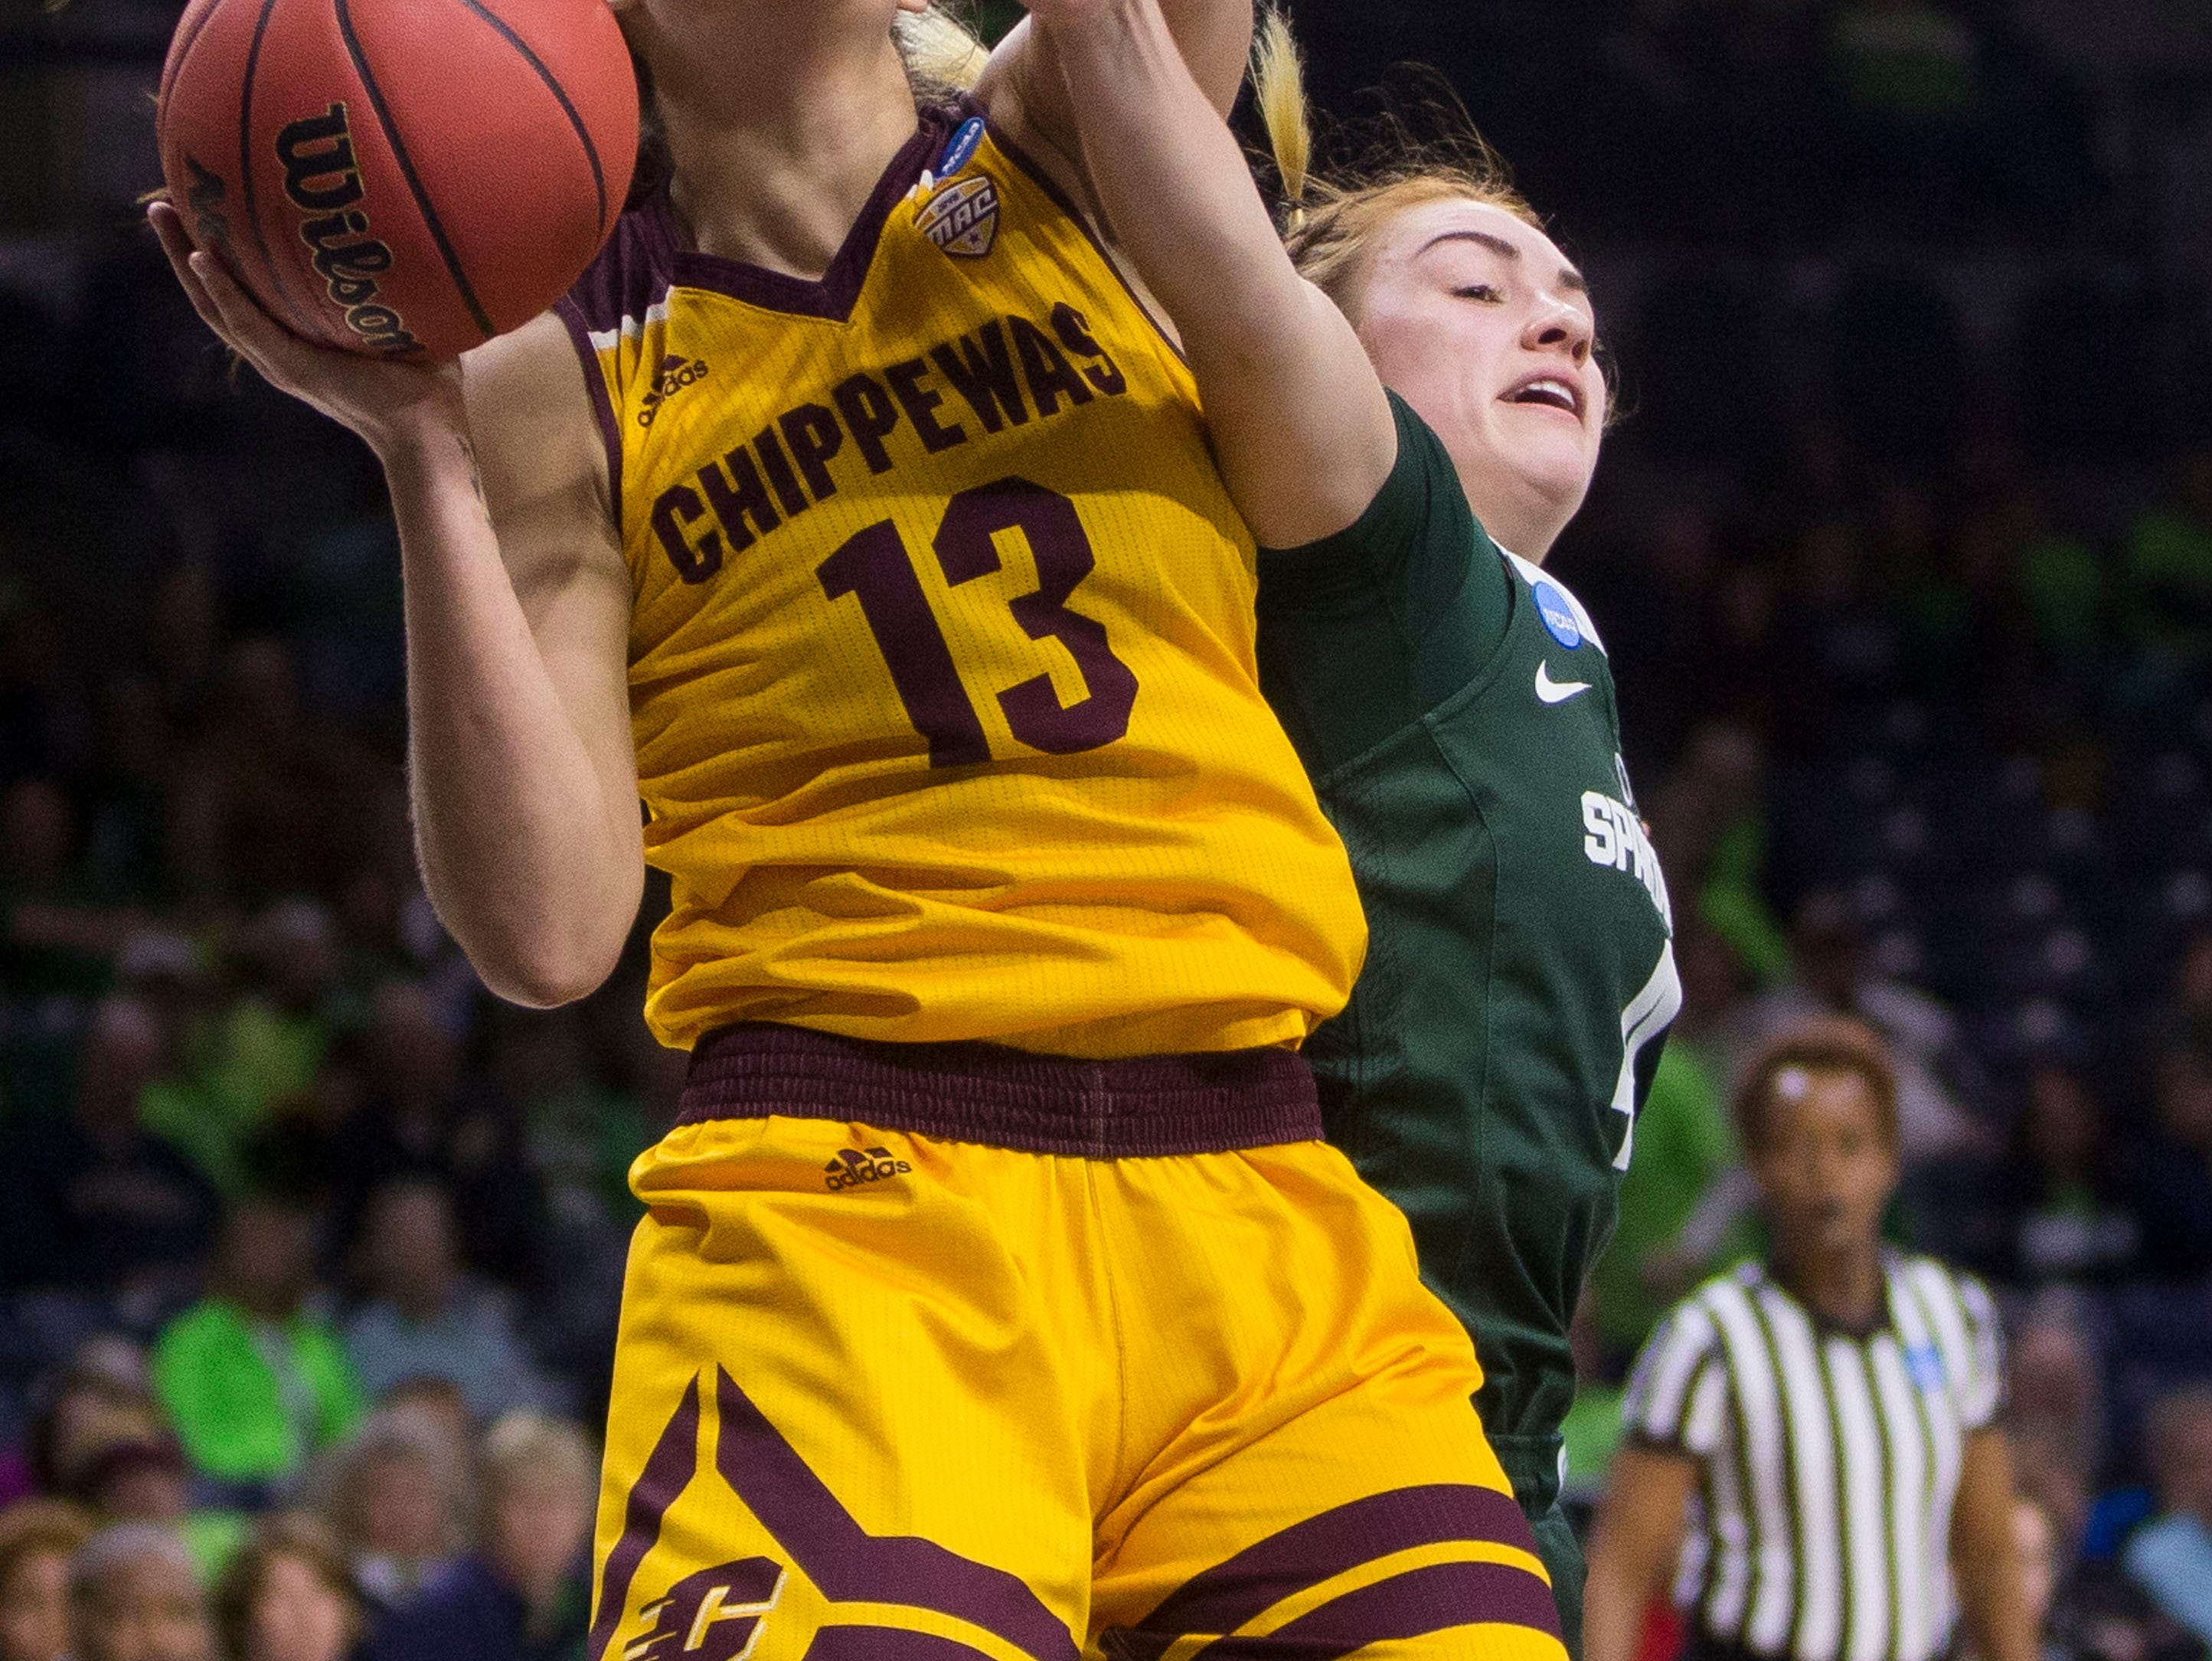 Central Michigan's Reyna Frost (13) goes up for a shot as Michigan State's Taryn McCutcheon defends during a first-round game in the NCAA women's college basketball tournament in South Bend, Ind., Saturday, March 23, 2019. (AP Photo/Robert Franklin)